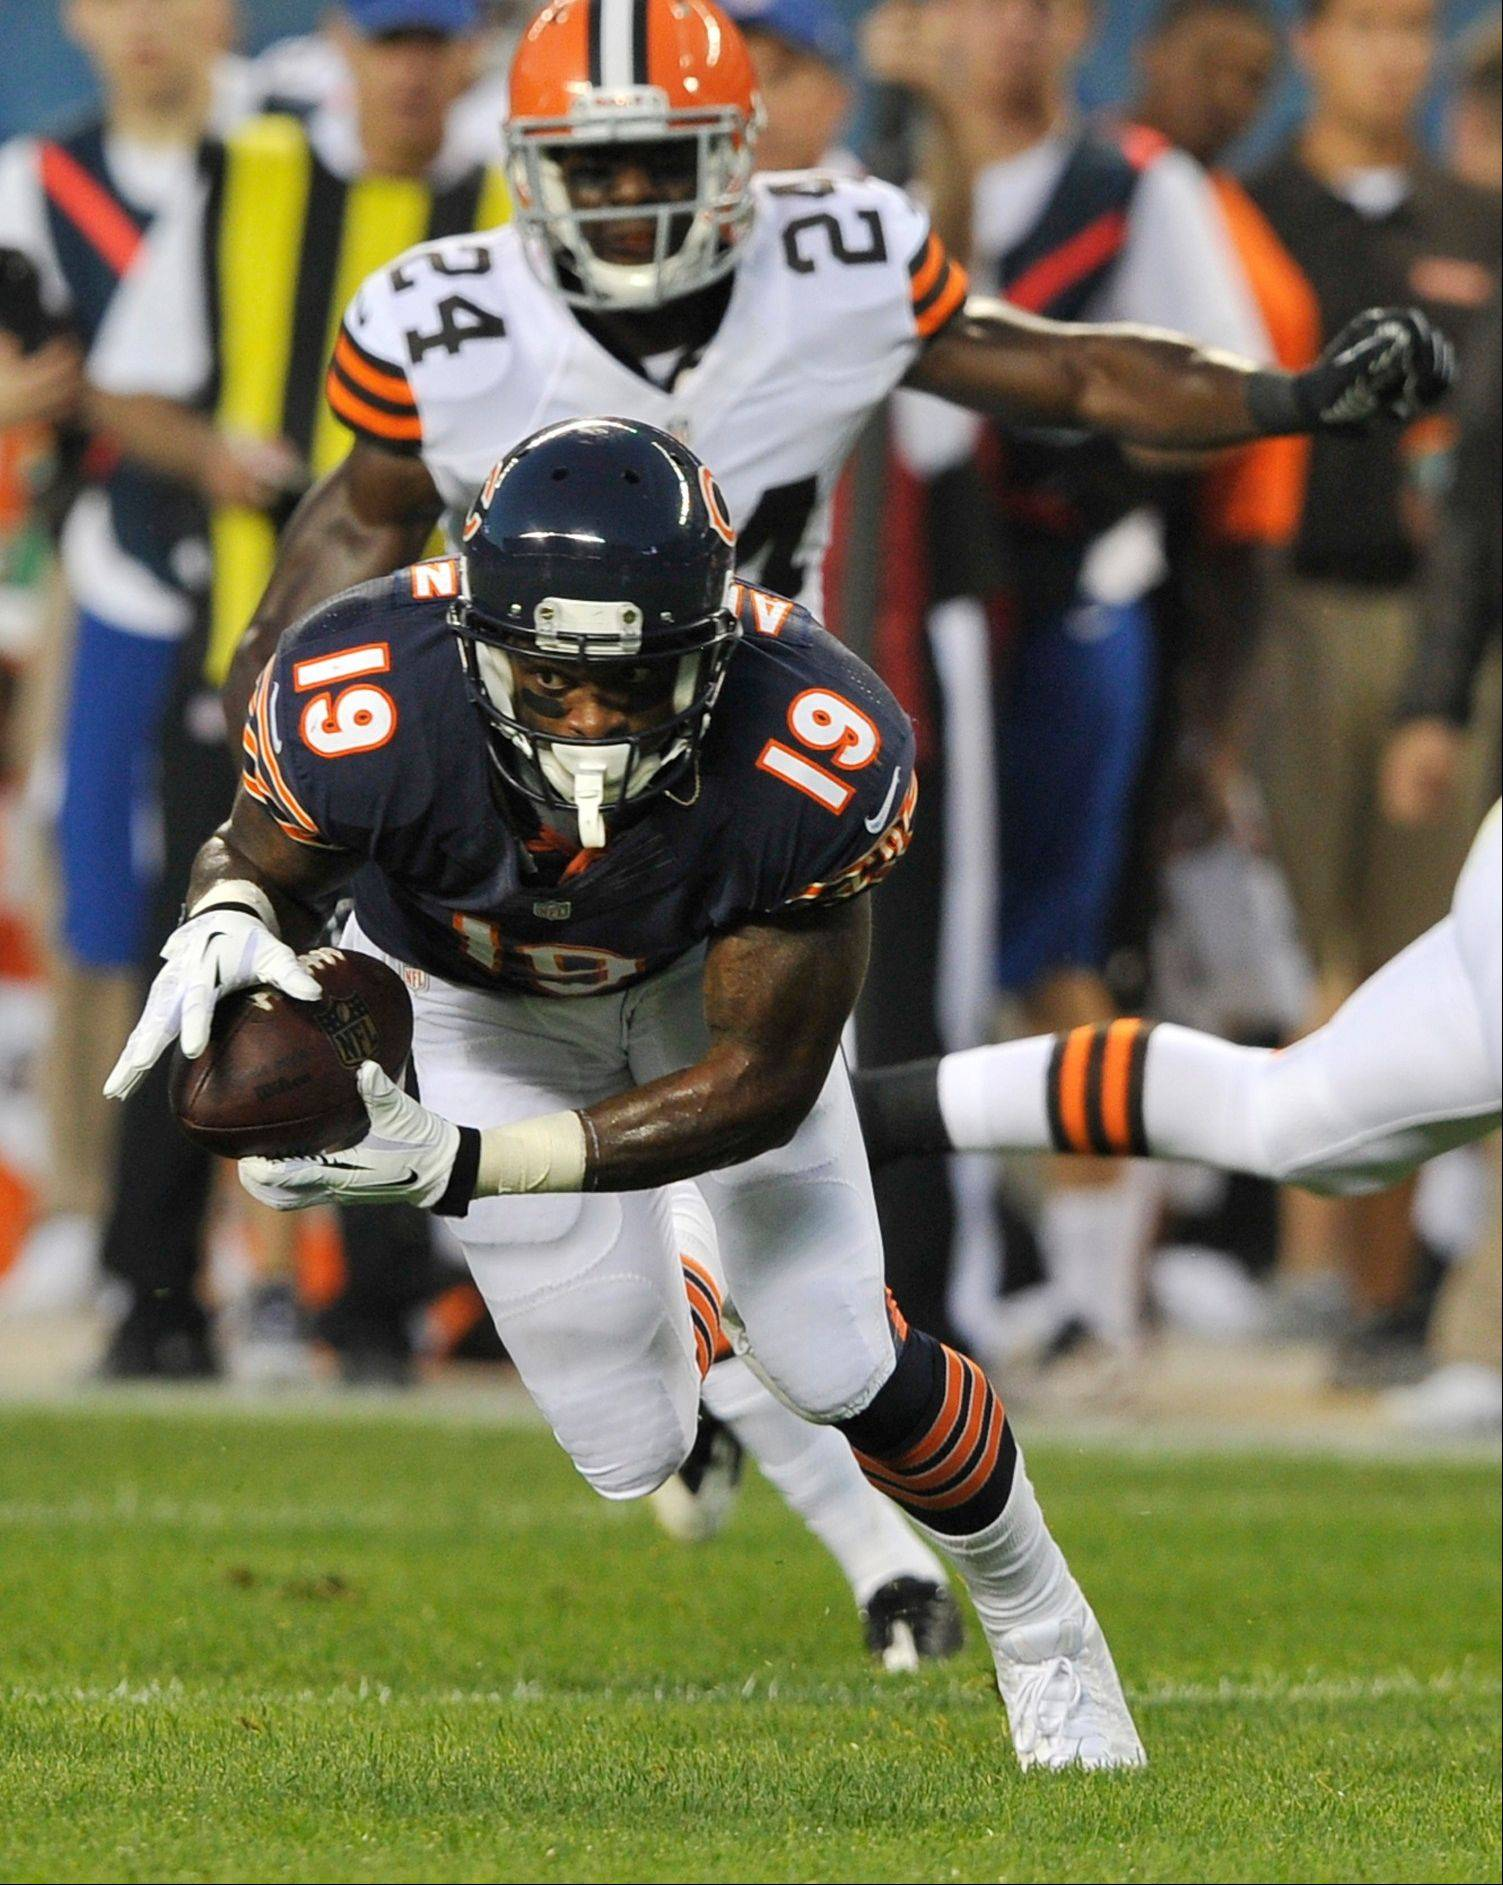 Wide receiver Joe Anderson makes 1 of his 4 receptions during the Bears' preseason game against Cleveland at Soldier Field on Thursday night.